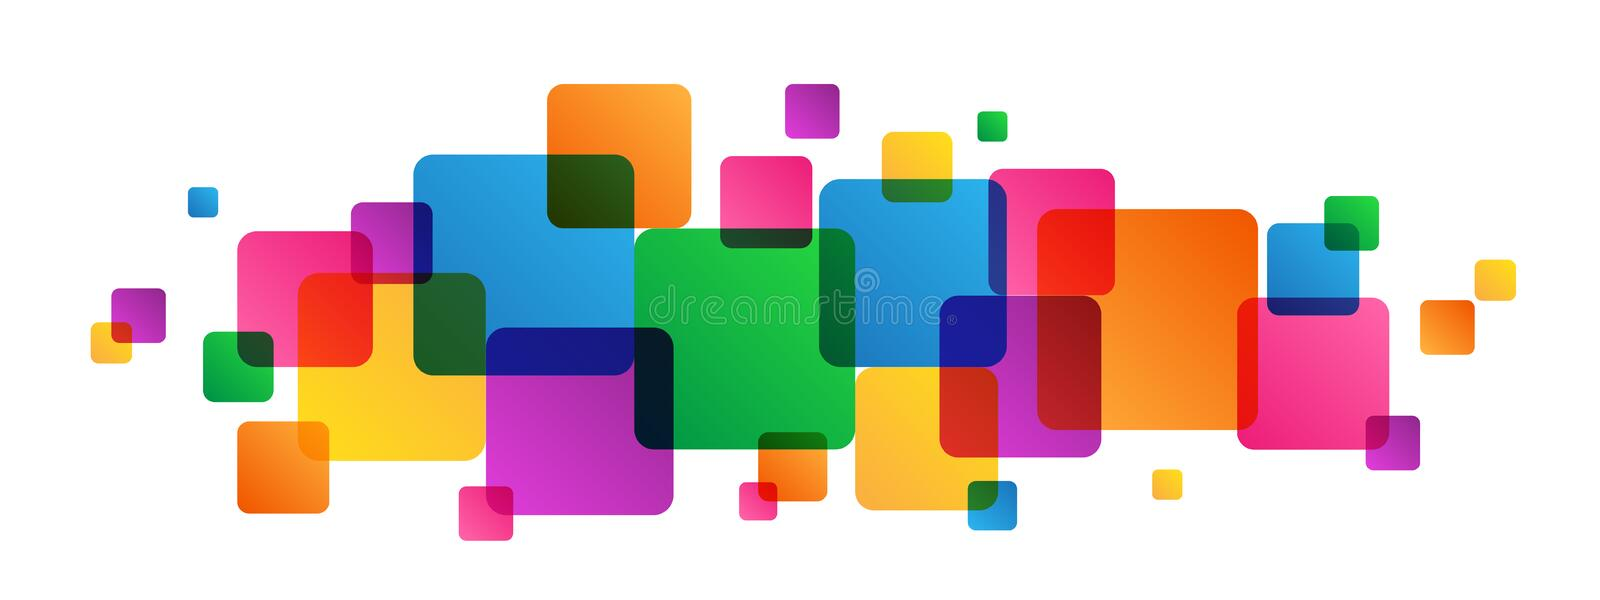 Abstract overlapping colorful squares background vector illustration